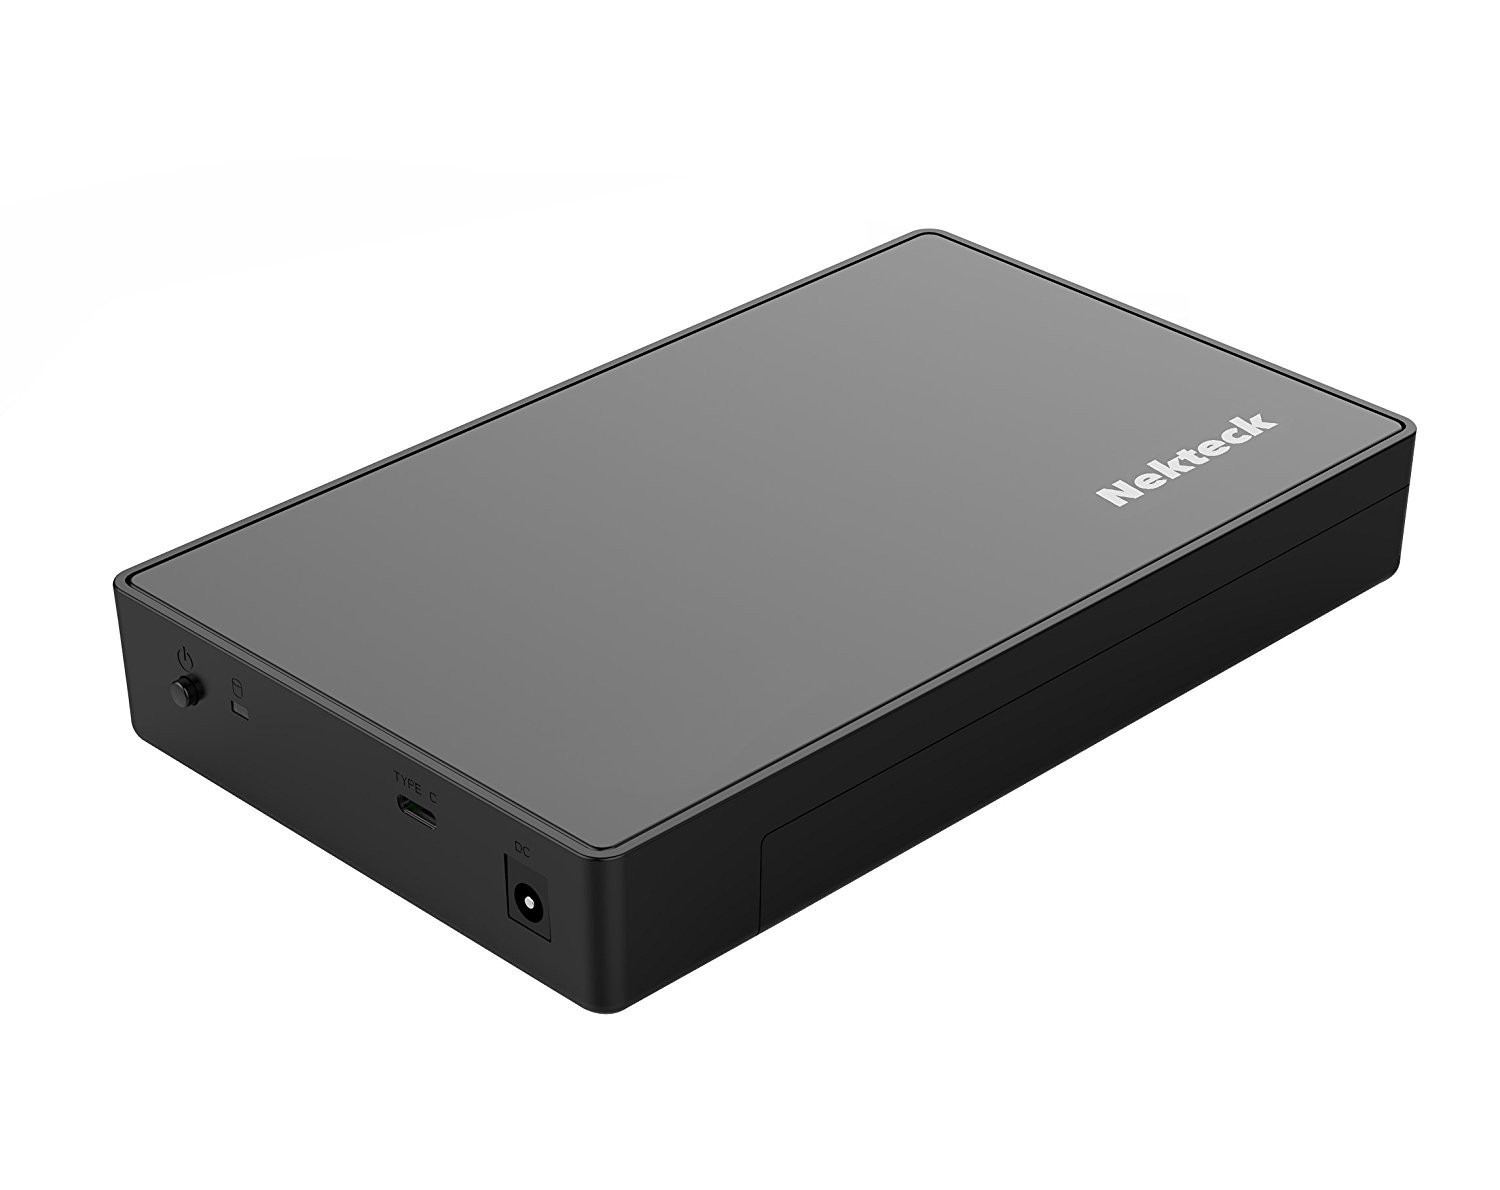 Nekteck 3.5/2.5-inch USB Type C 3.0 External HDD Hard Drive Disk Enclosure Case with USB C Interface for 3.5'' 2.5'' SATA SSD, HDD [Support UASP and 8TB Drives] Tool-Free Design - Black